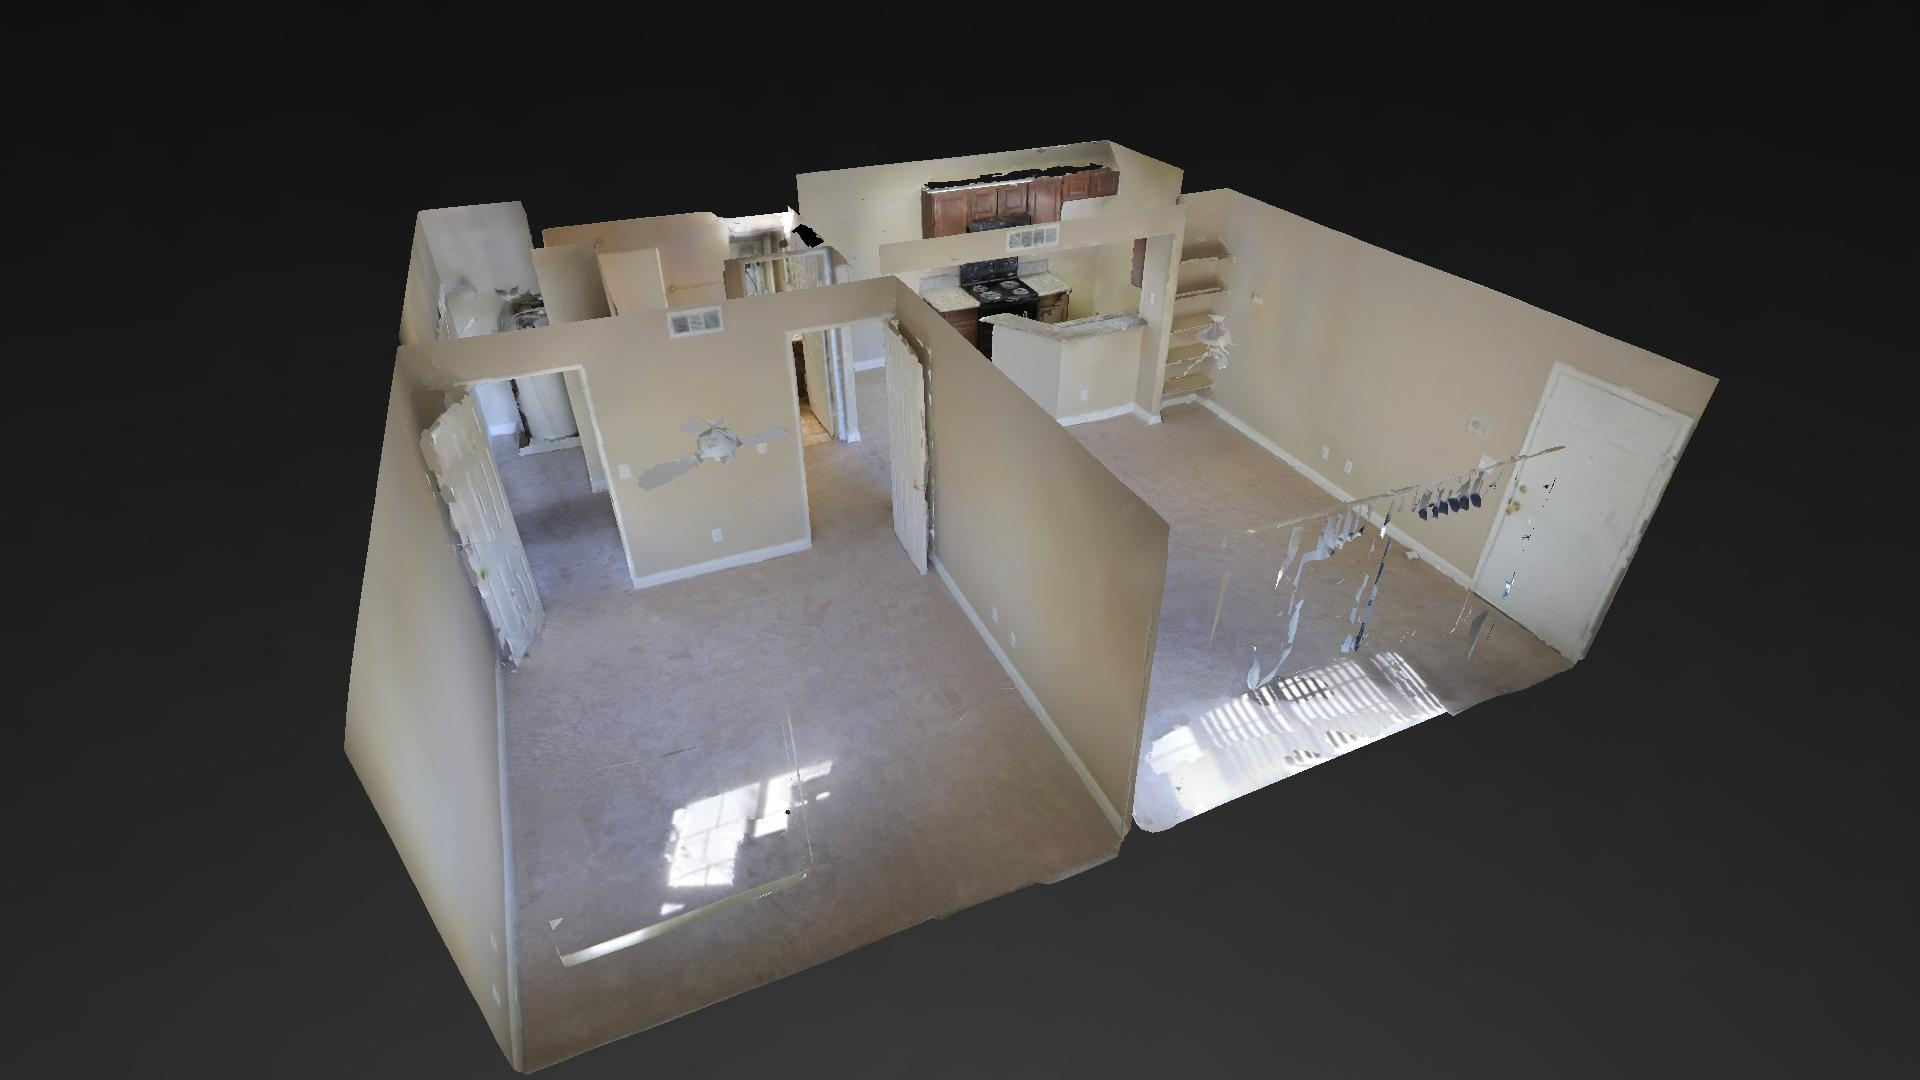 3D Virtual Tours that feel like Google Street maps, but indoors